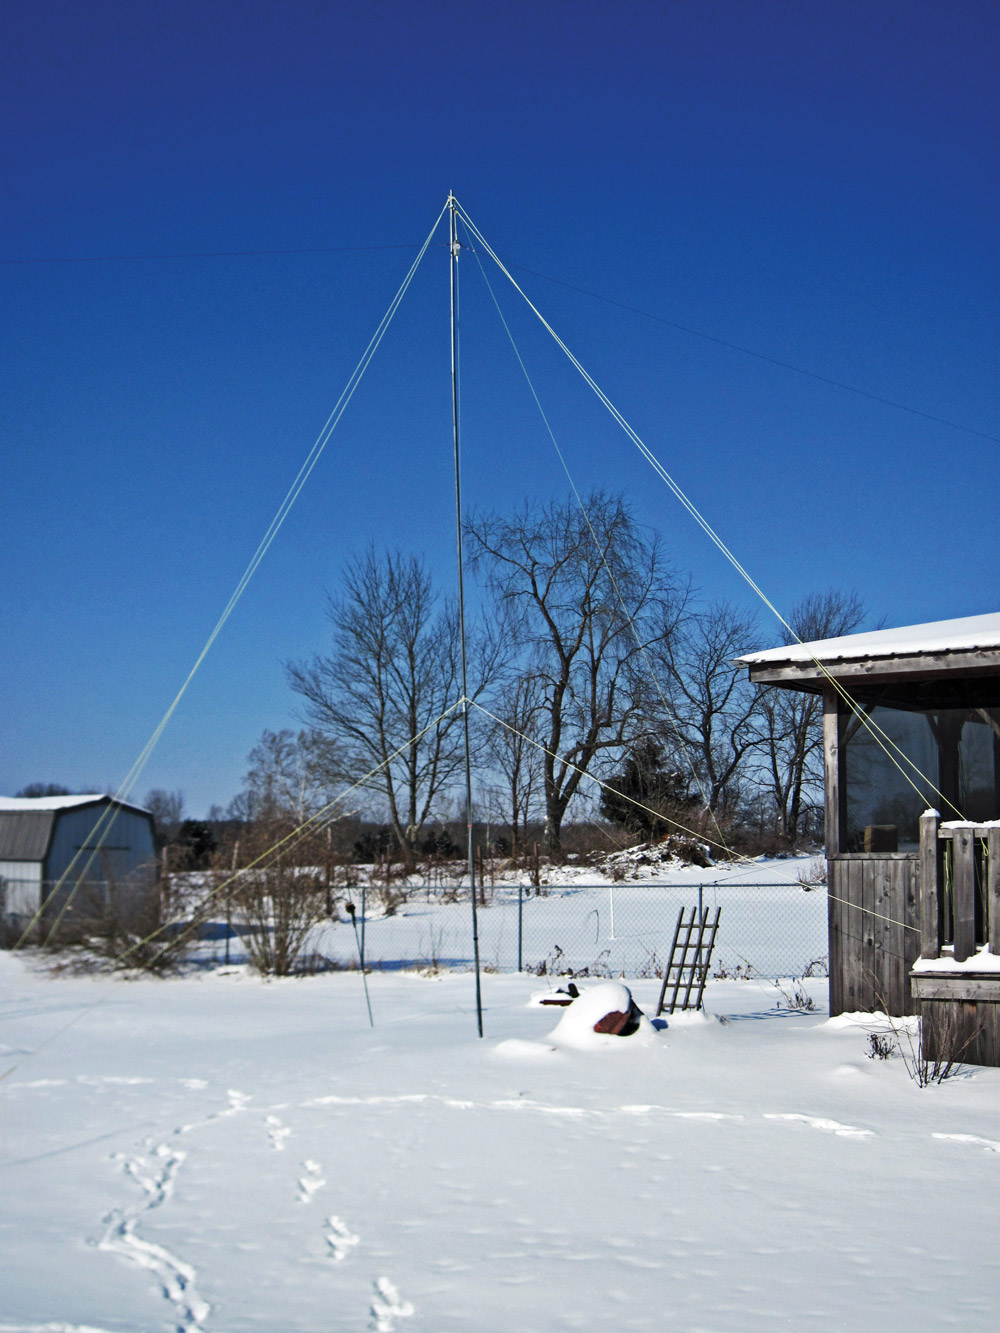 Tight guy lines keep the author's HF antenna standing against strong winds.